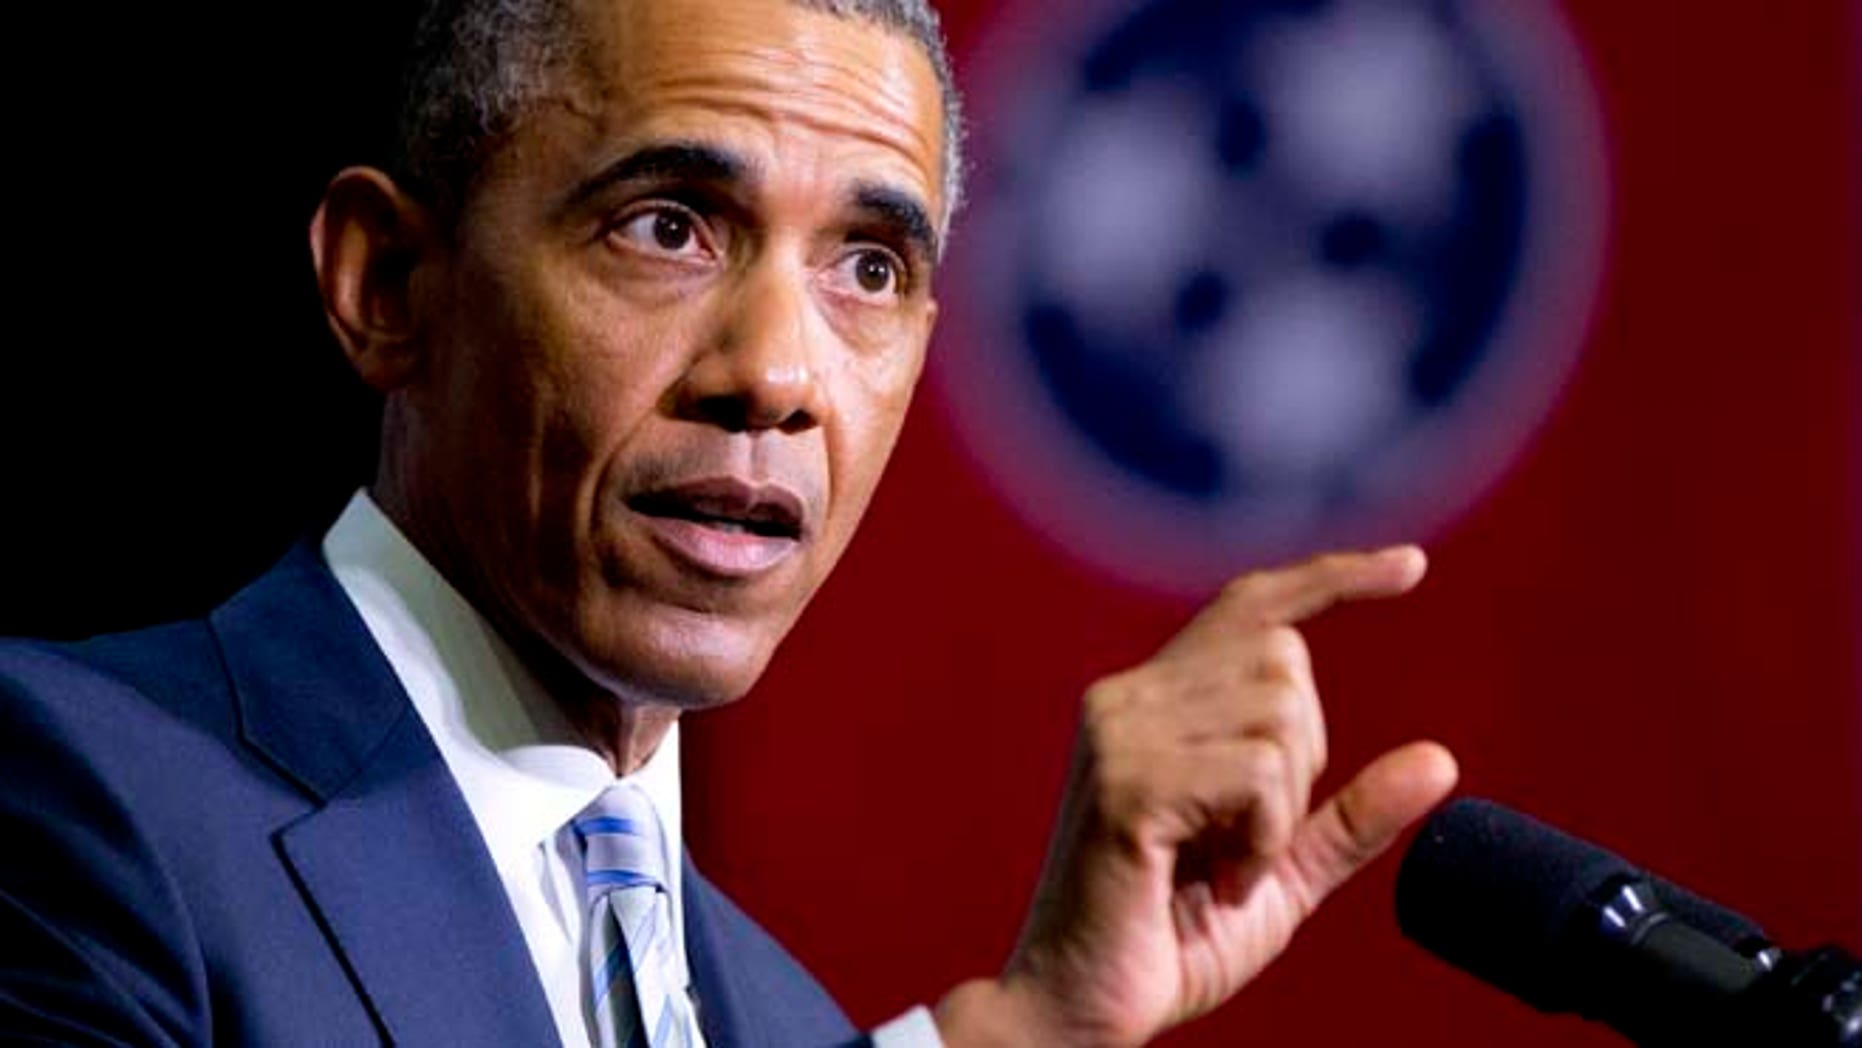 Jan. 9, 2015: President Barack Obama speaks at Pellissippi State Community College in Knoxville, Tenn., about new initiatives to help more Americans go to college and get the skills they need to succeed. (AP)